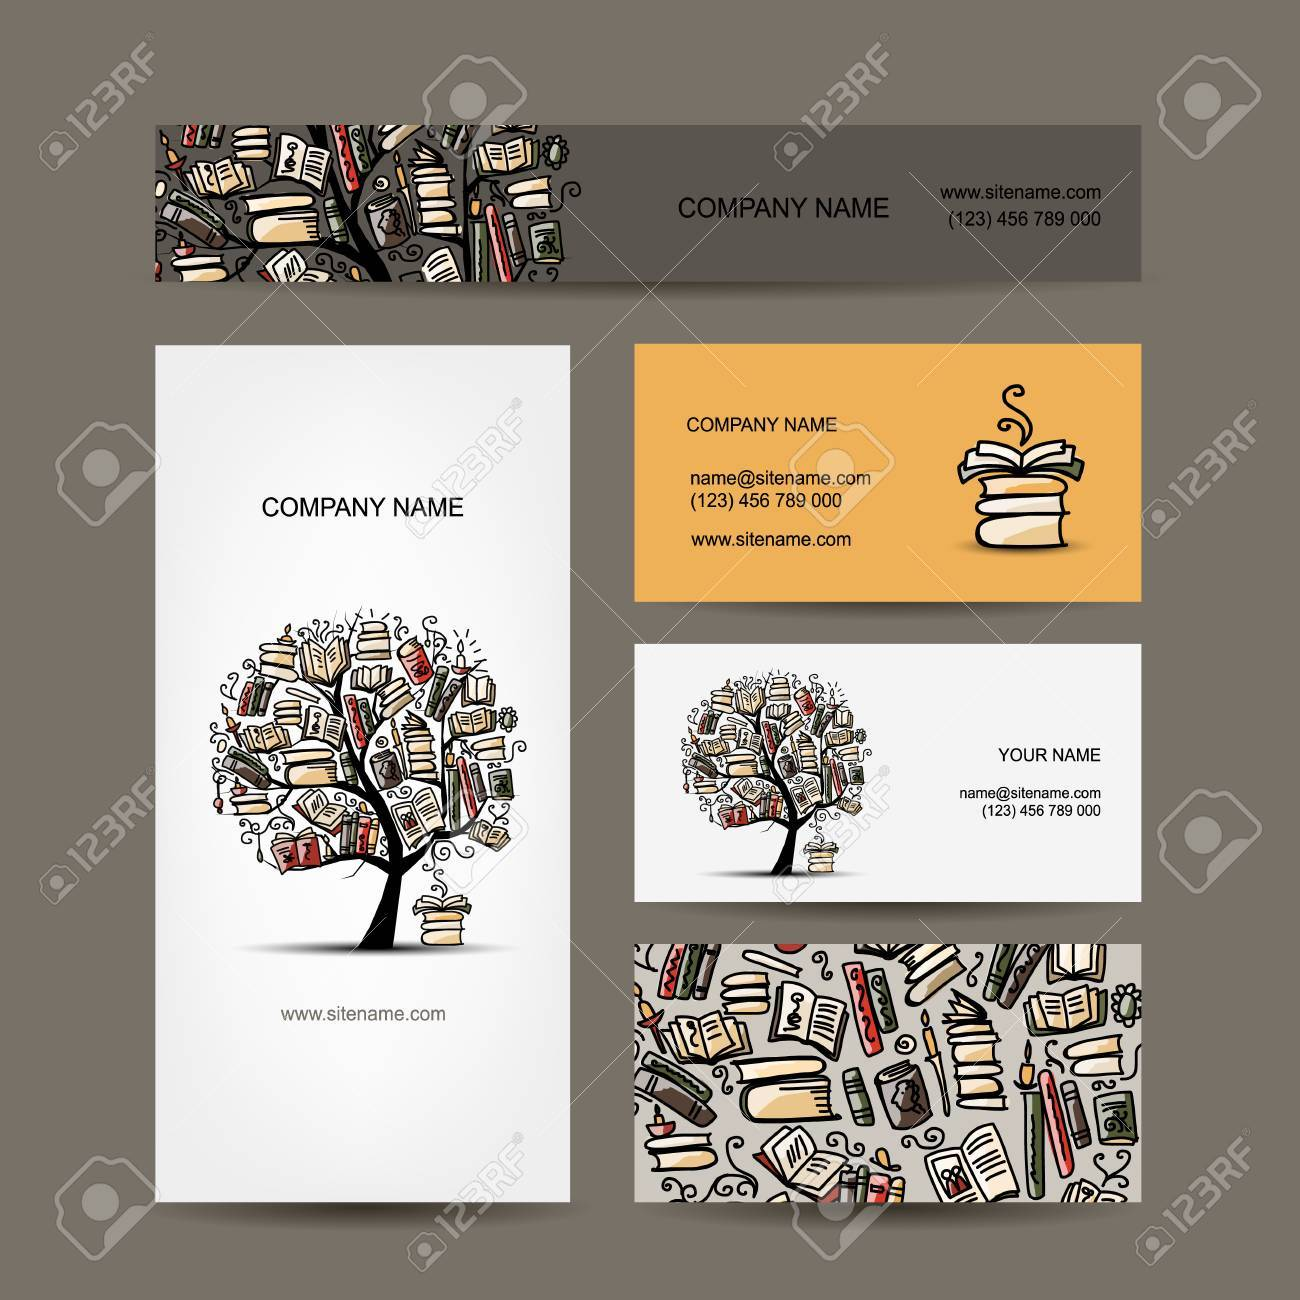 Business Cards Design With Book Tree. Vector Illustration Royalty ...